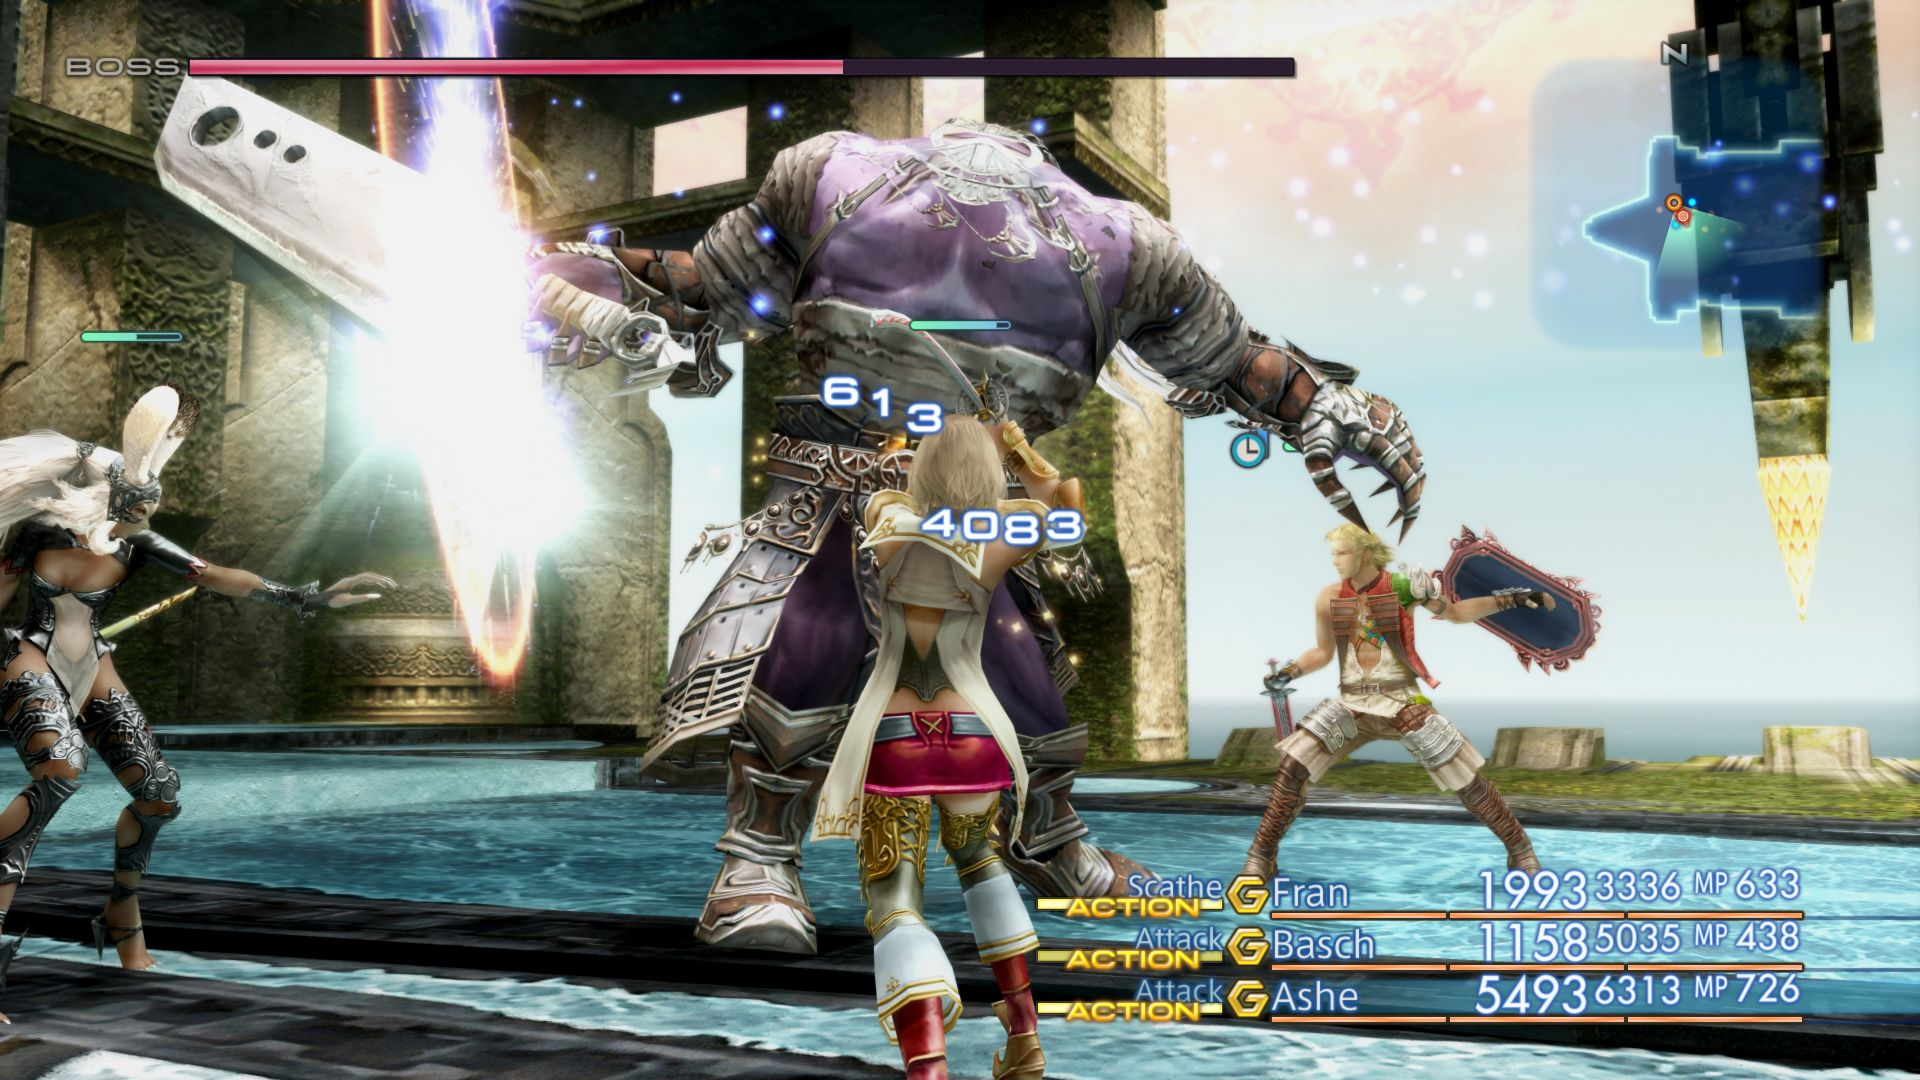 Final Fantasy XII: The Zodiac Age's PC launch trailer proves how timeless FFXII is screenshot